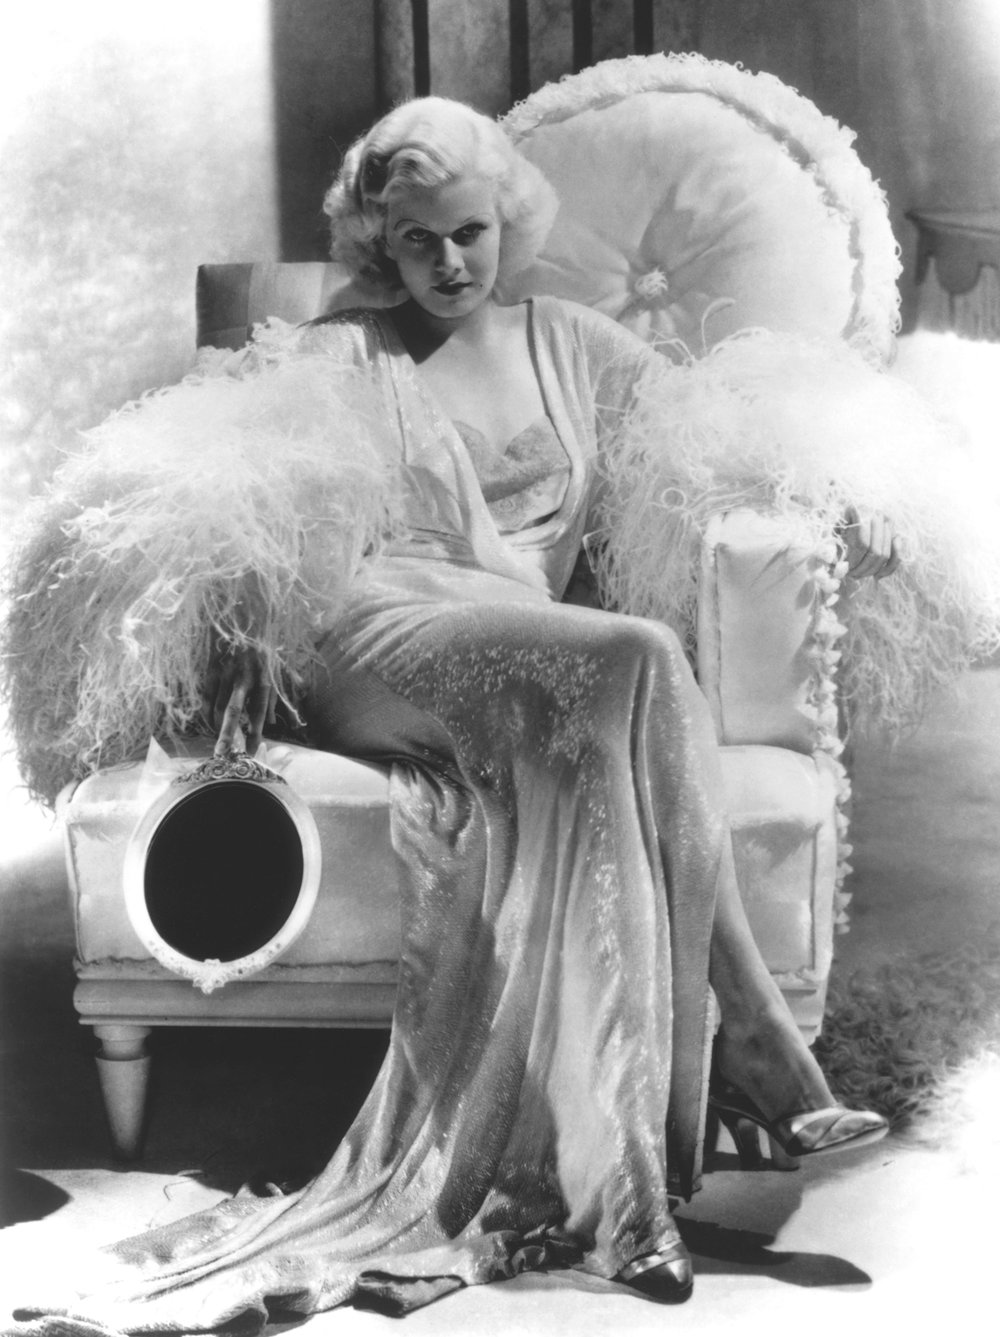 Jean Harlow - Marilyn modeled her image after Jean Harlow, her idol.